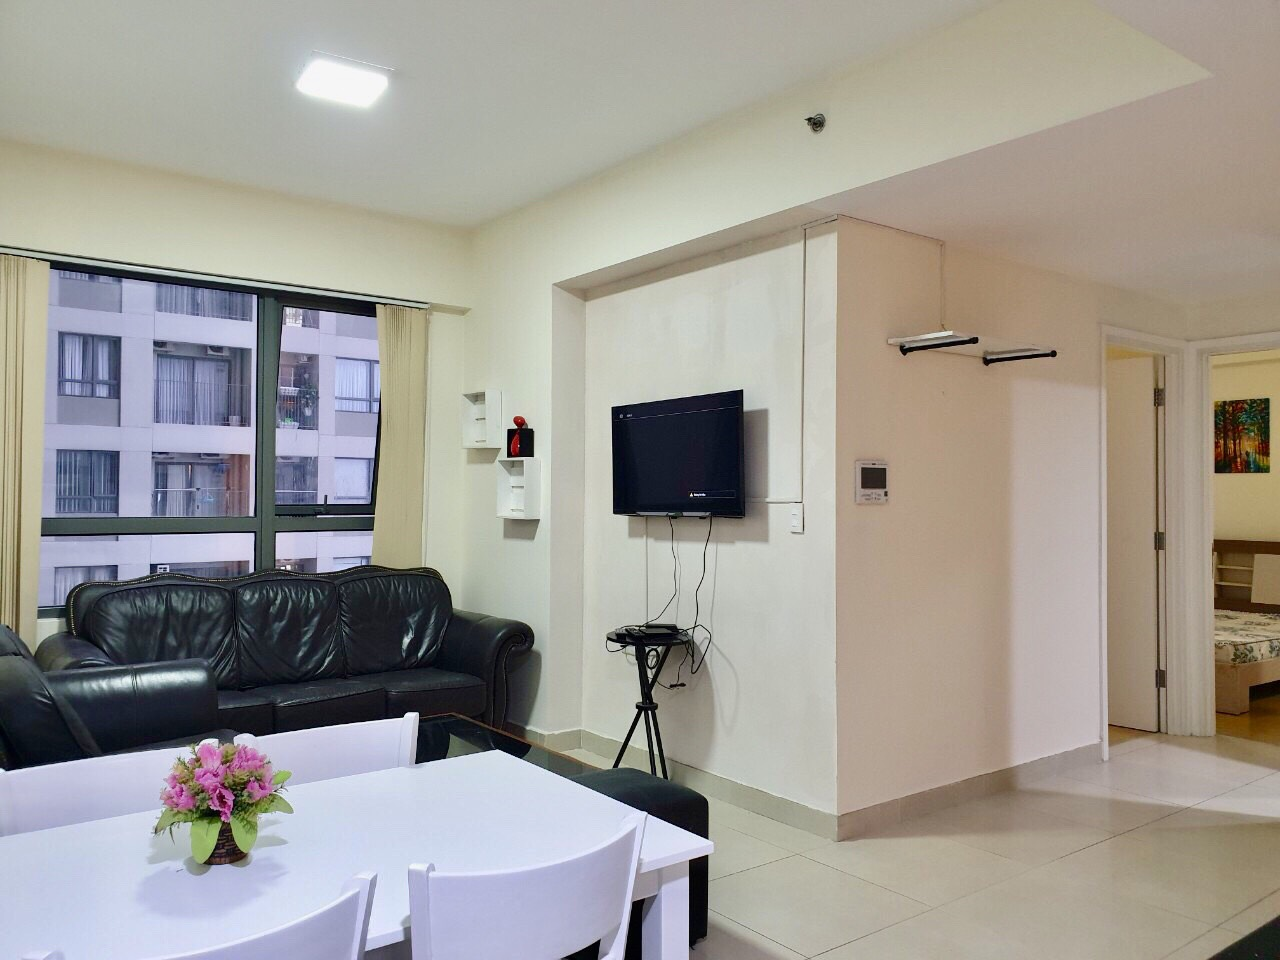 Apartment for rent D2143463 (1)